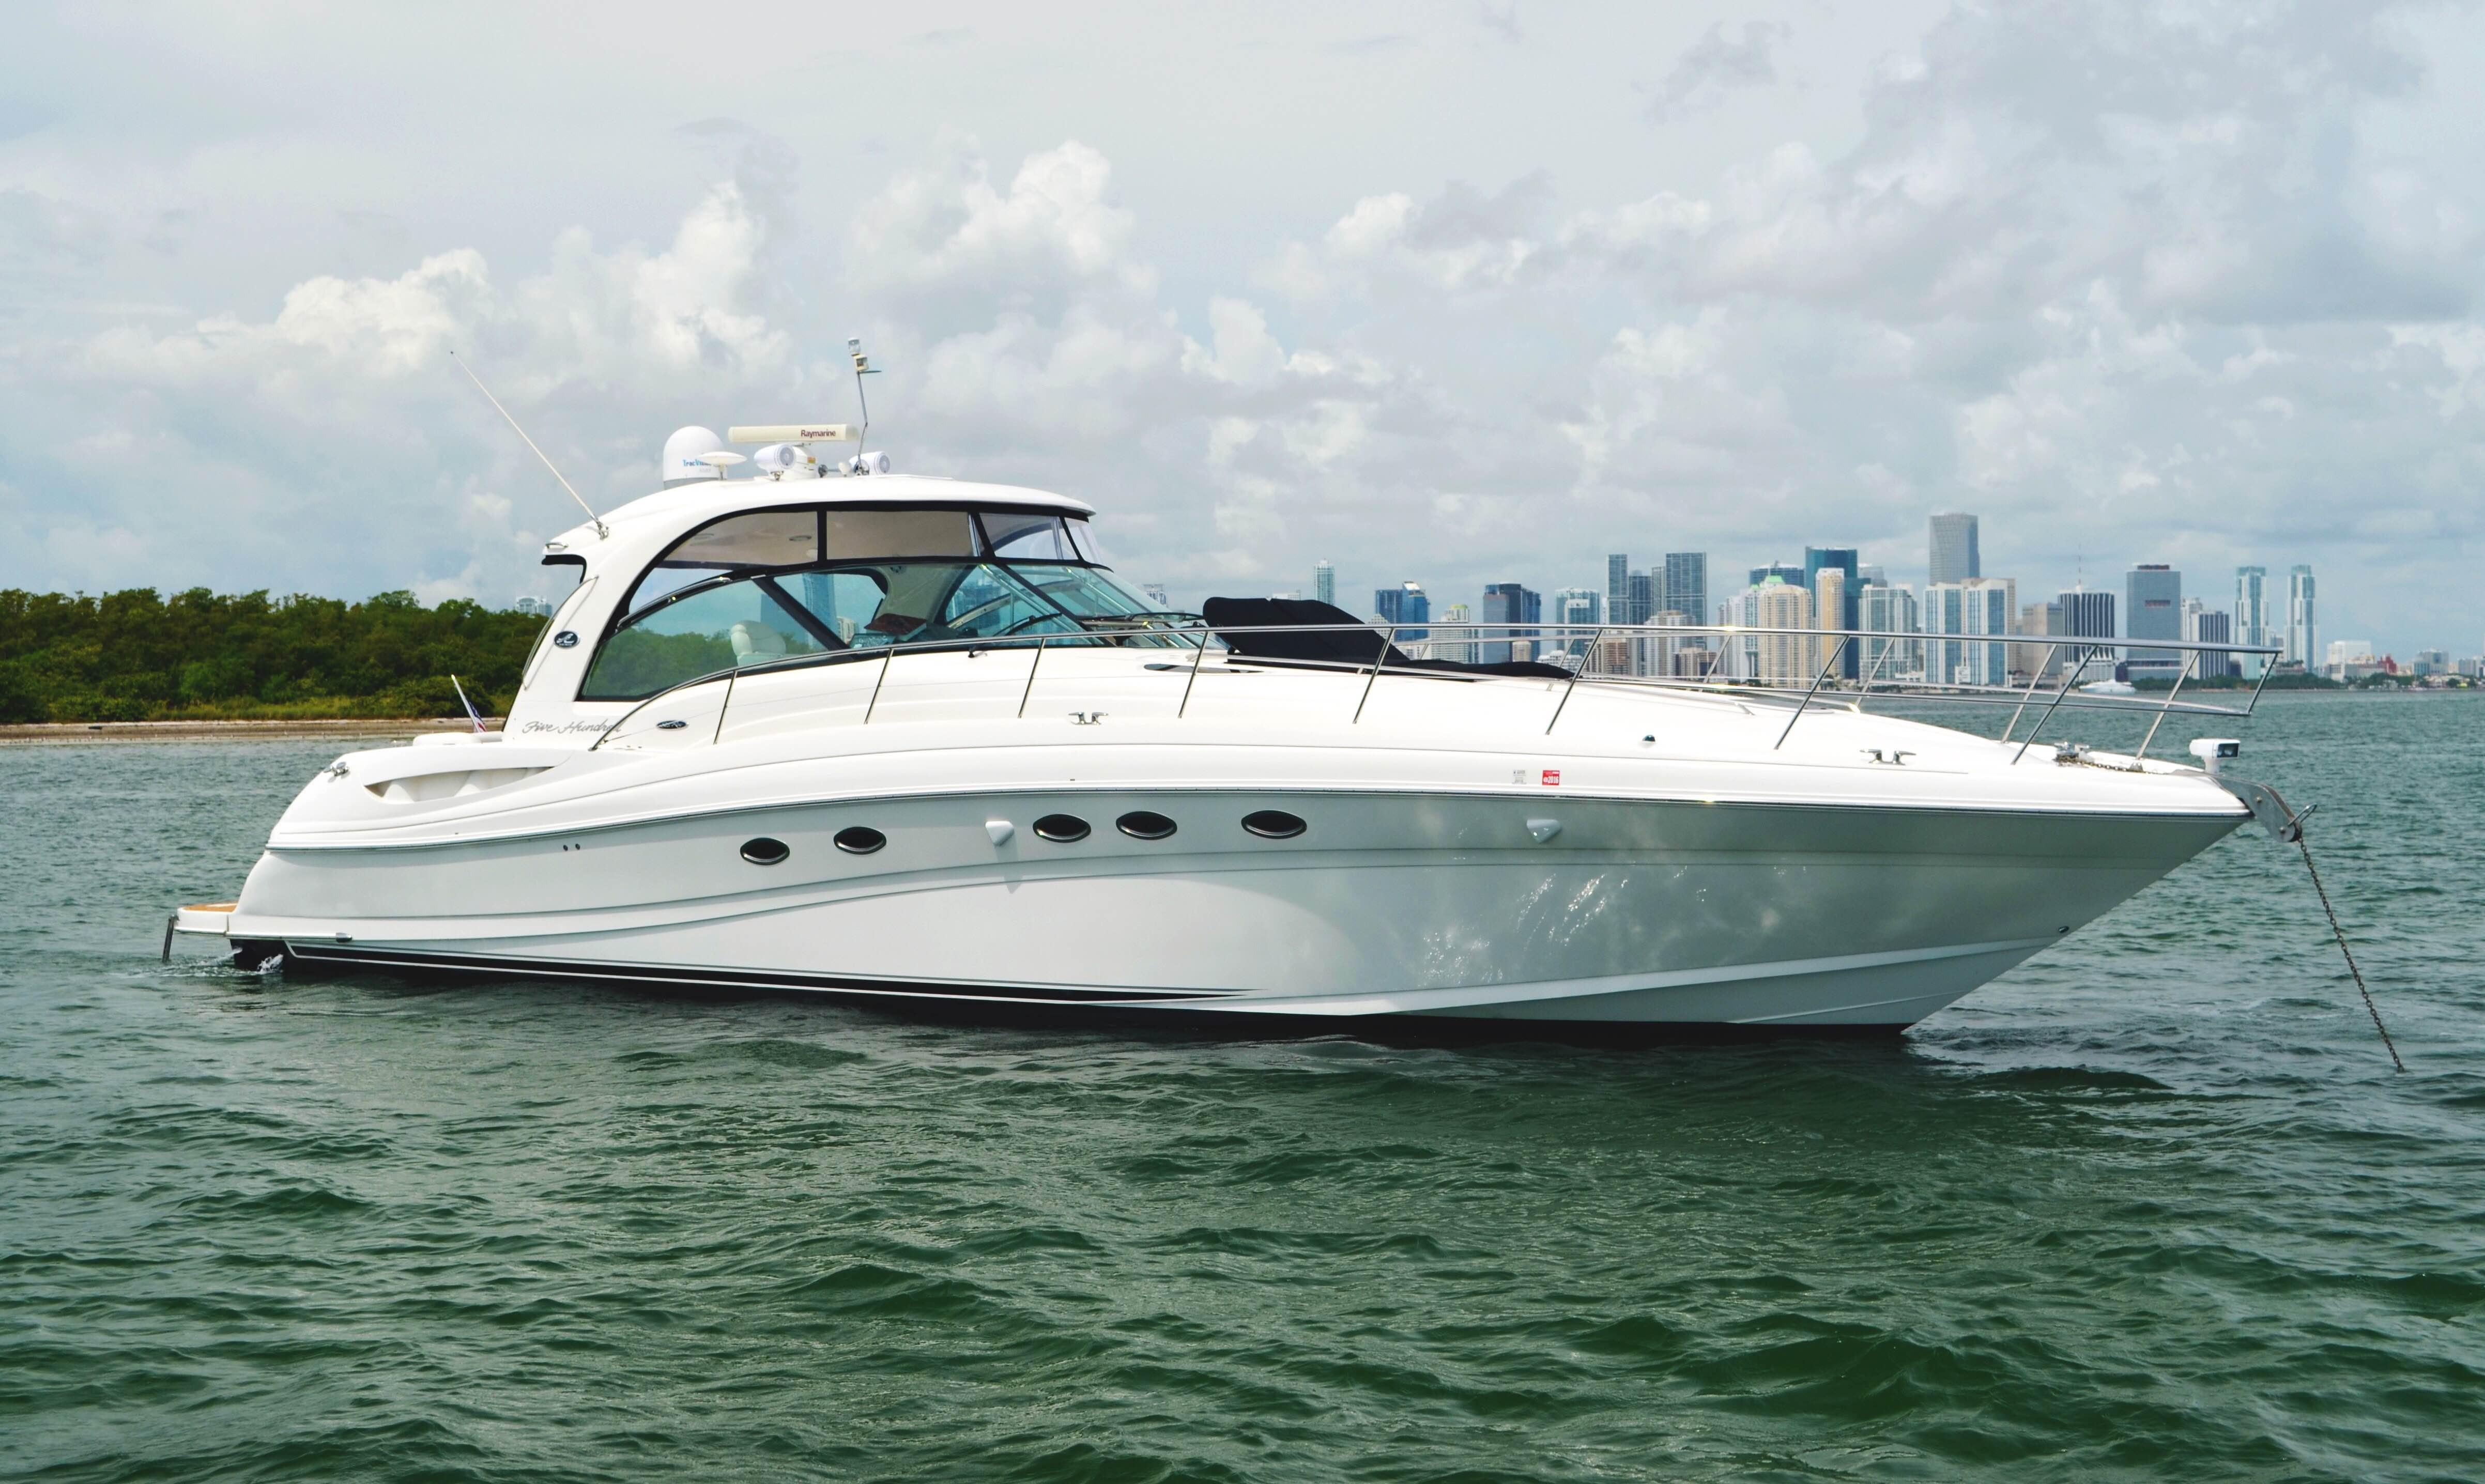 Used sea ray yachts for sale from 41 to 50 feet for 50 ft motor yachts for sale